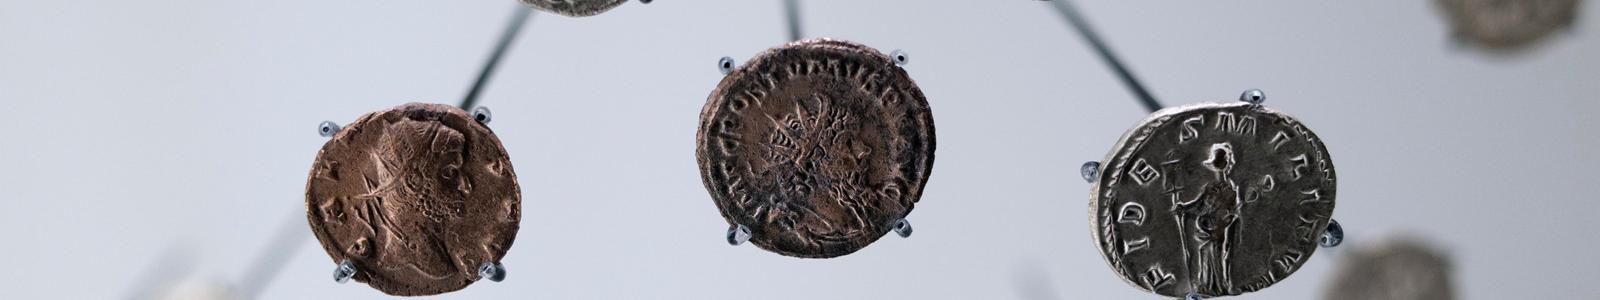 Coin, English, silver, issued by William II, moneyer, Godwine, at Winchester, Hampshire, 1087 to 1100.